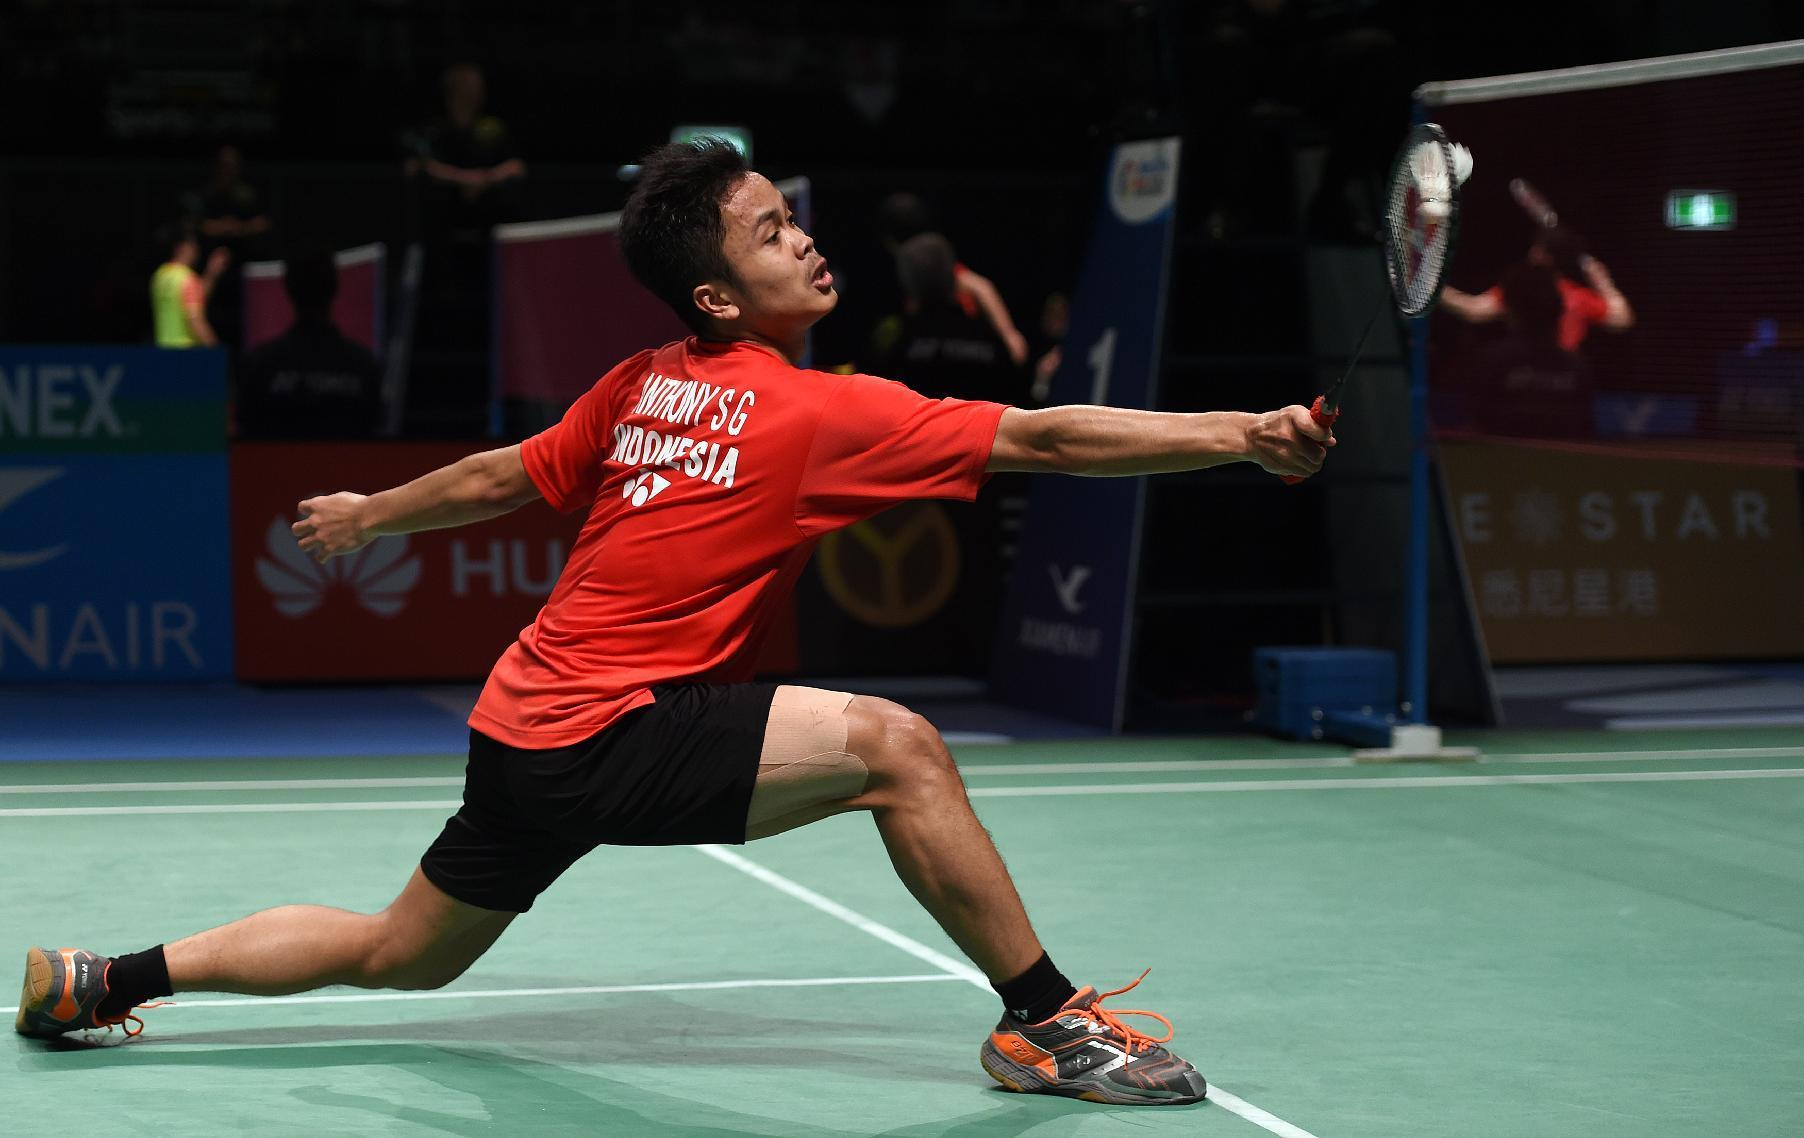 Badminton Indonesia s Ginting upsets top seed Chen to reach